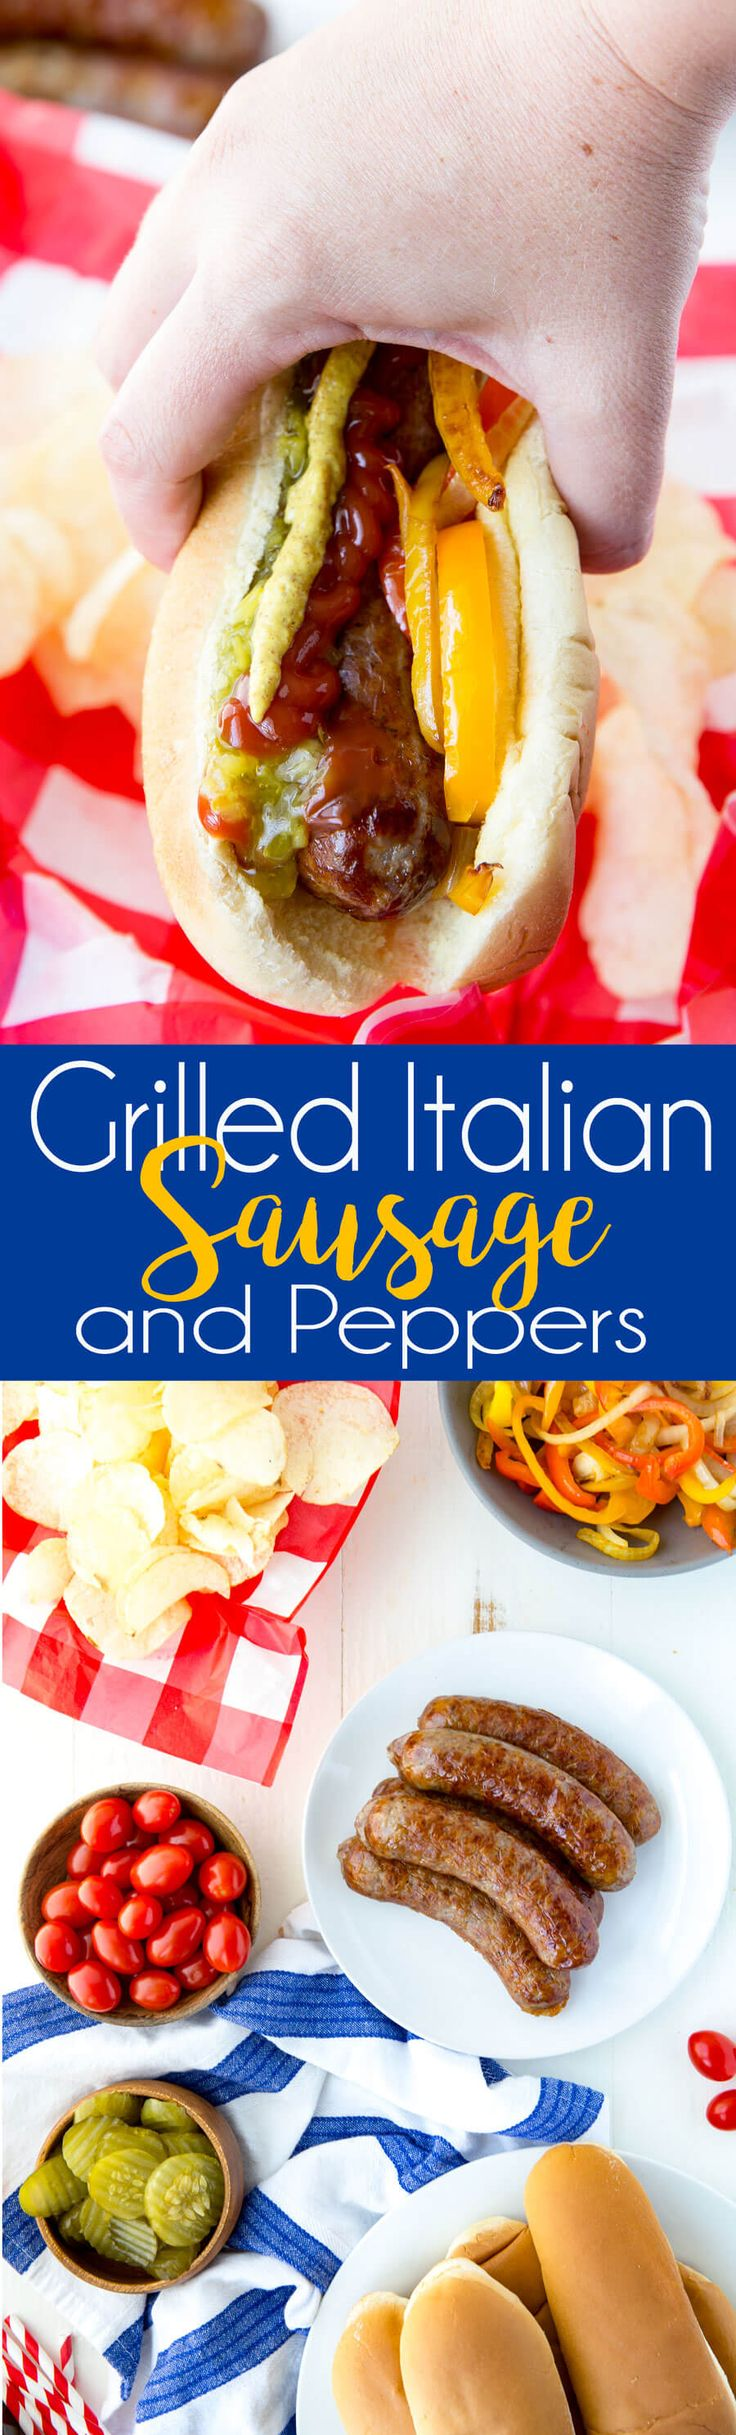 Italian Sausage and Peppers make the perfect Father's Day meal. Great cook out food! #ad